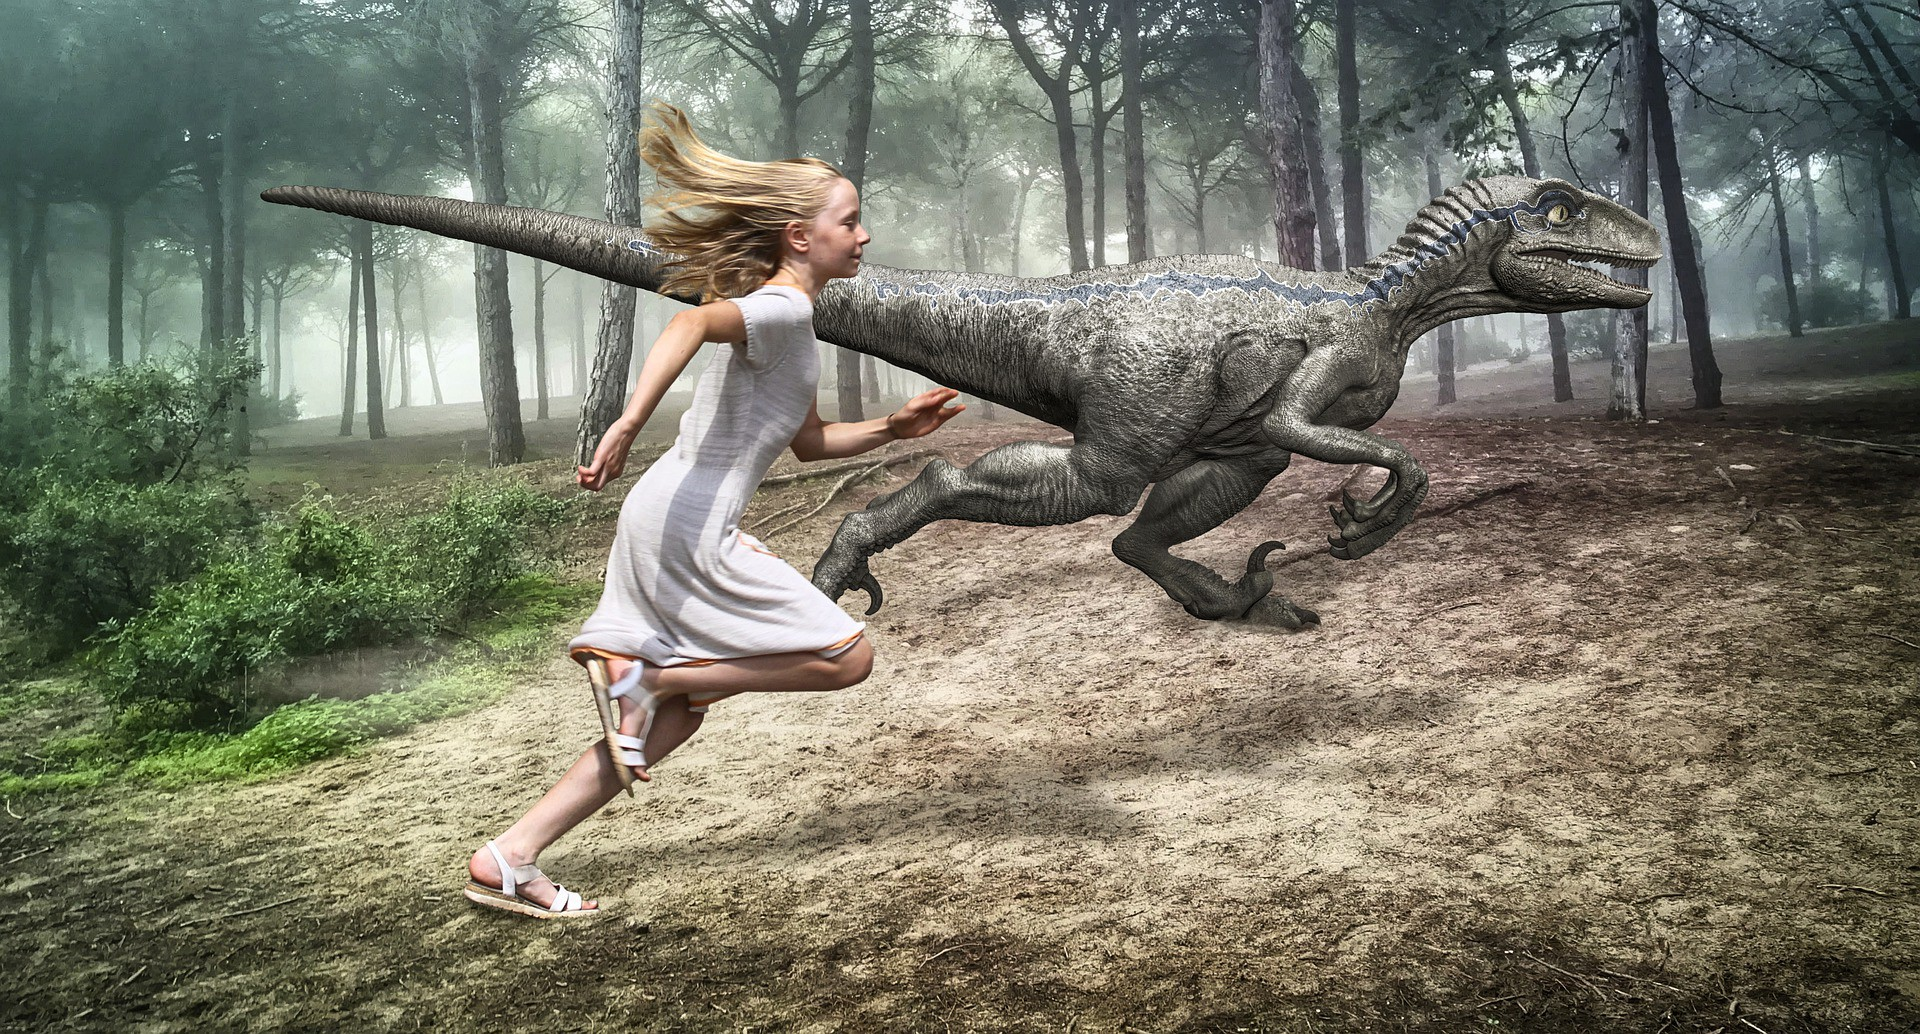 Girl in a white dress with flowing blond hair running alongside a dinosaur through a wooded area.